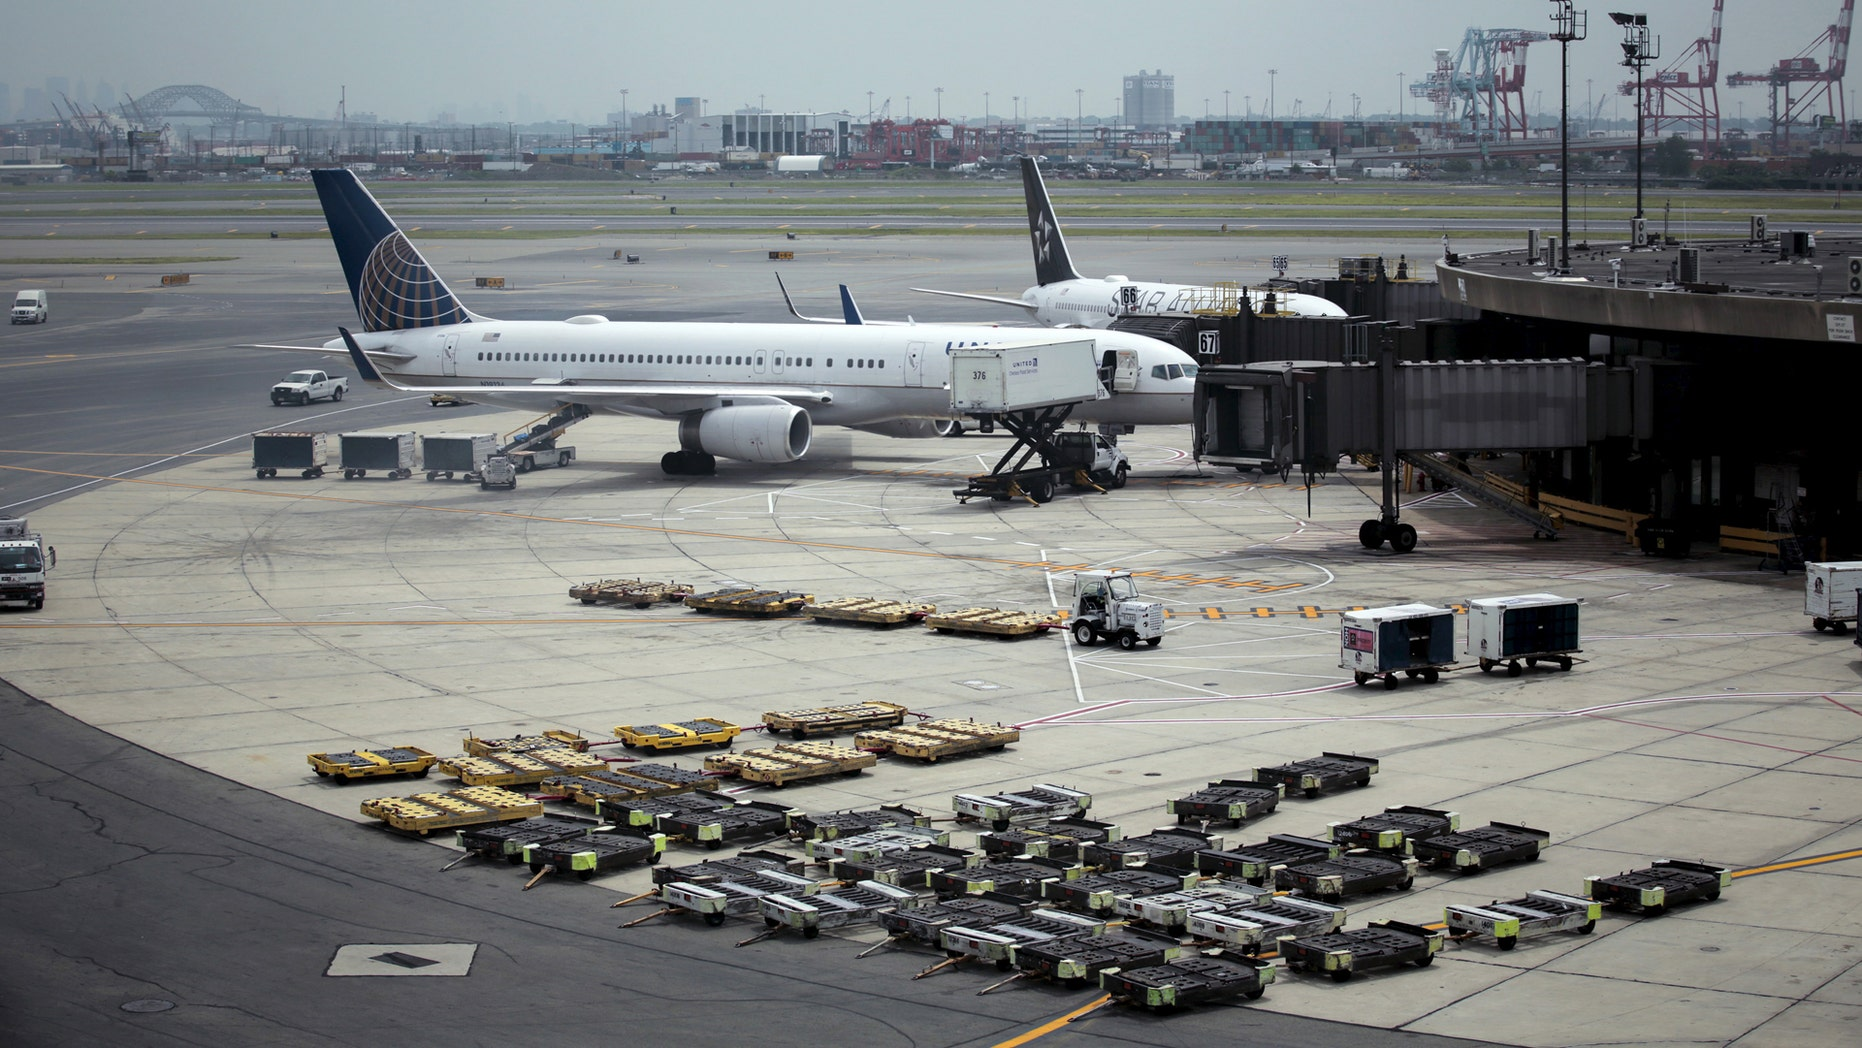 File photo: United Airlines planes are seen on platform at the Newark Liberty International Airport in New Jersey, July 8, 2015. (REUTERS/Eduardo Munoz)